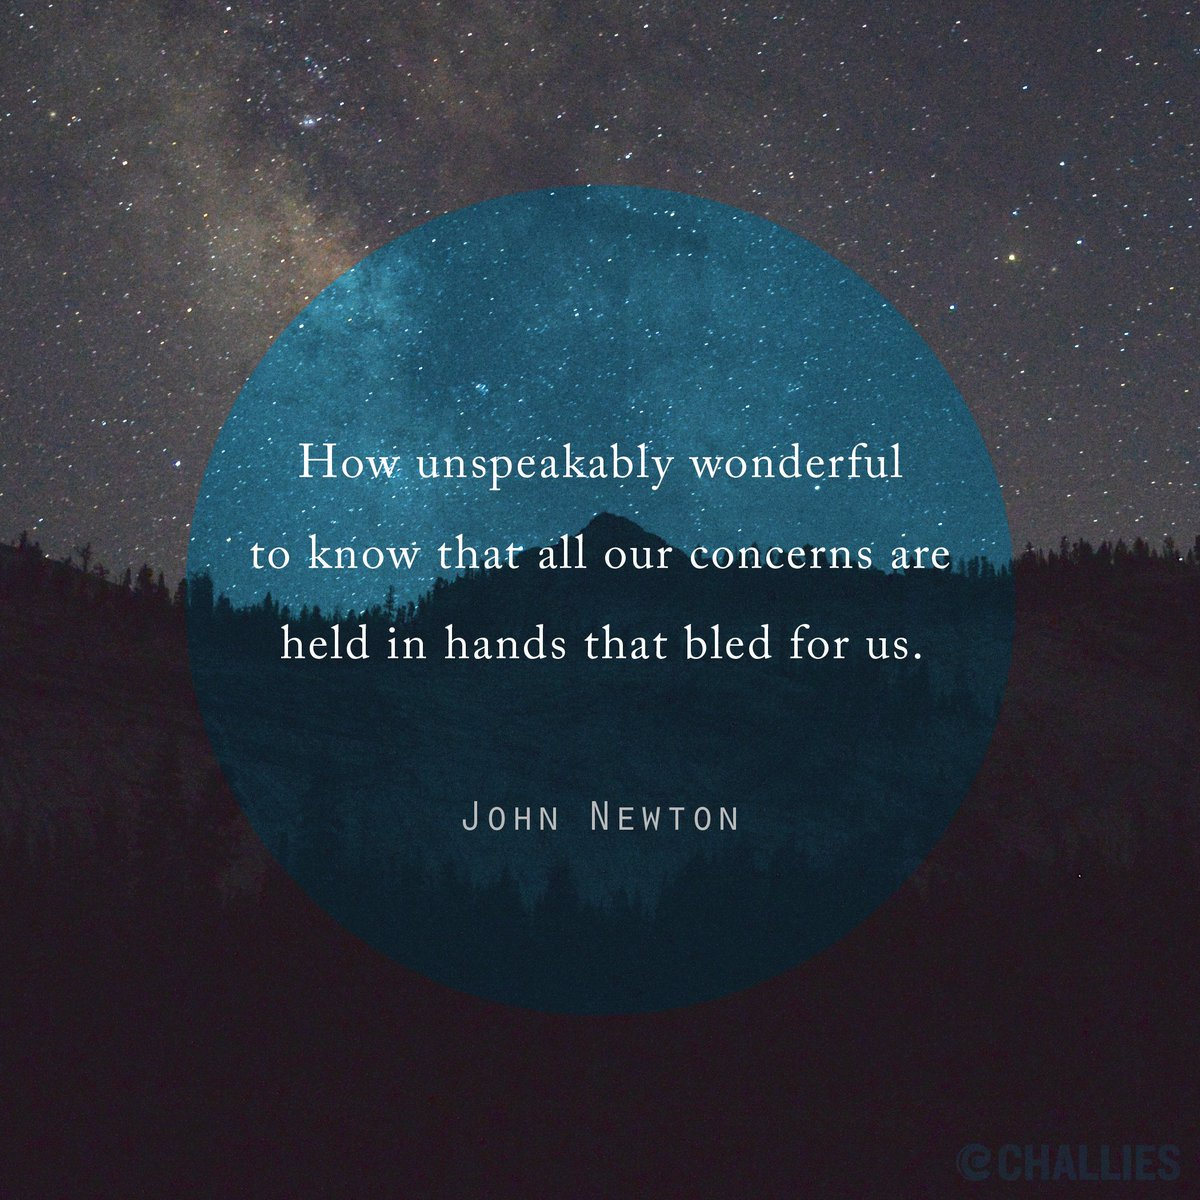 """How unspeakably wonderful to know that all our concerns are held in hands that bled for us."" (John Newton) https://t.co/qyyPgMdGsb"